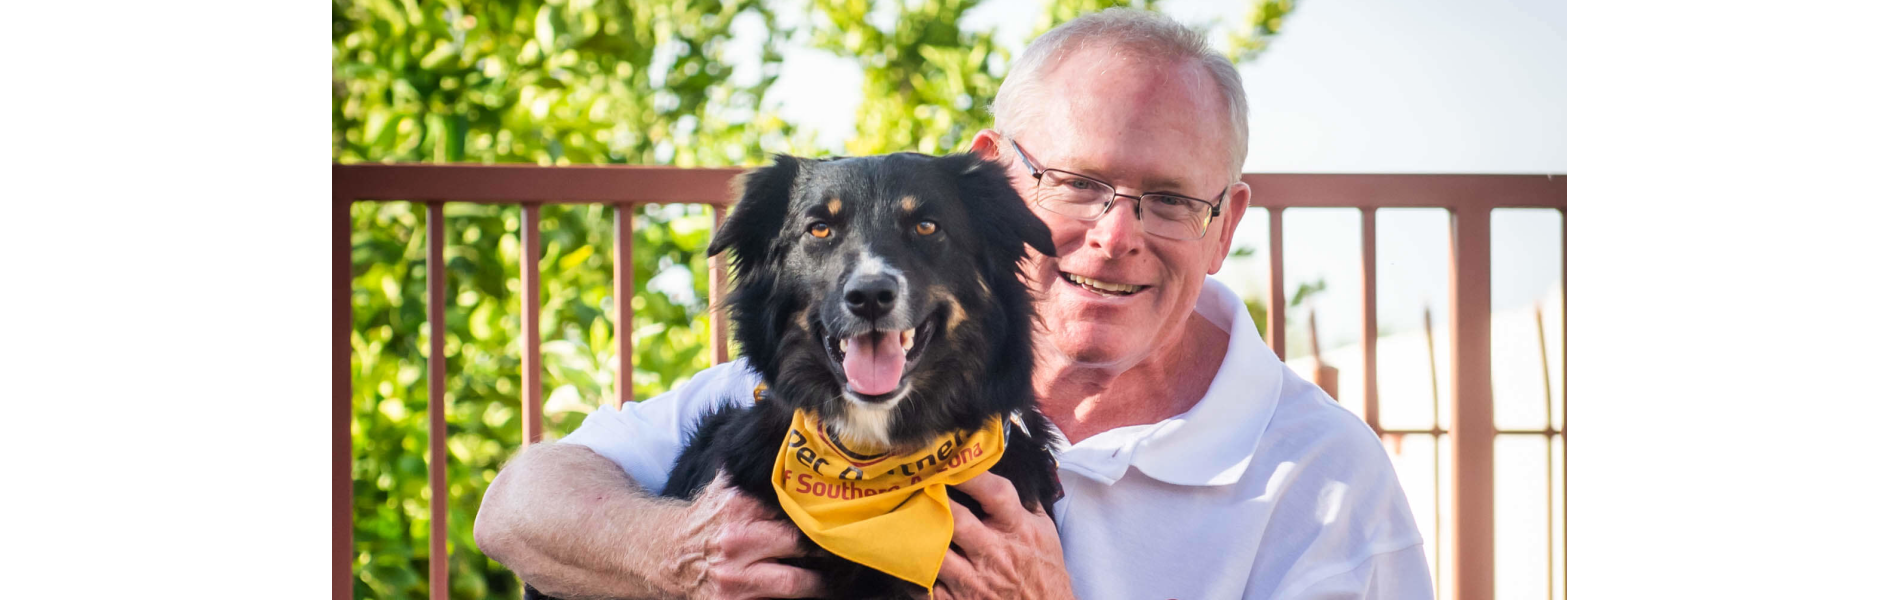 Pet Partners therapy dog team